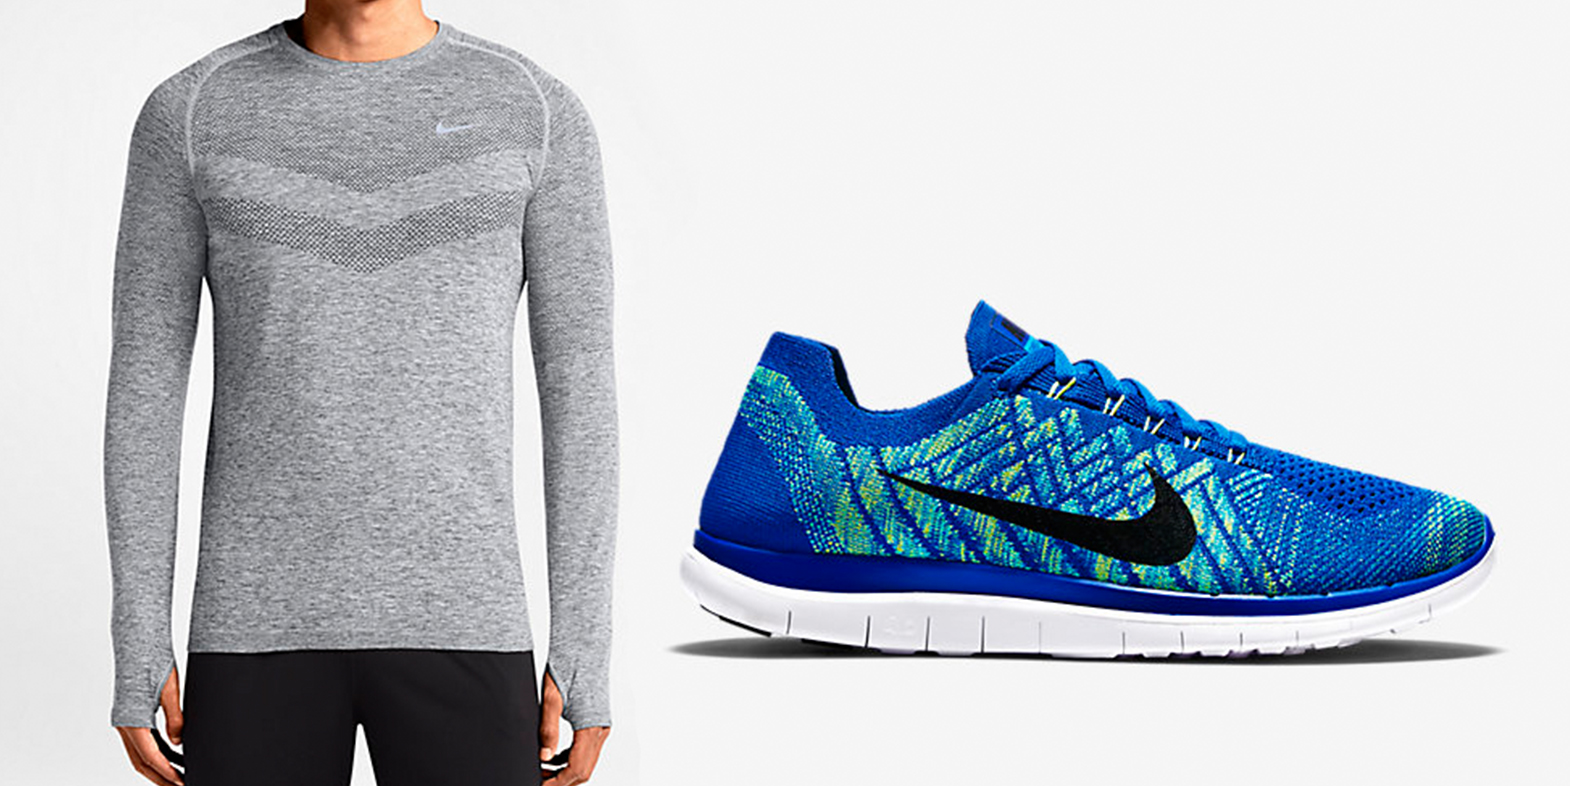 2bc0ff34c89ff Athletic Apparel: Nike extra 20% off clearance – Flyknit 4.0 Shoes $68  (Orig. $120), Reebok Outlet 50% off